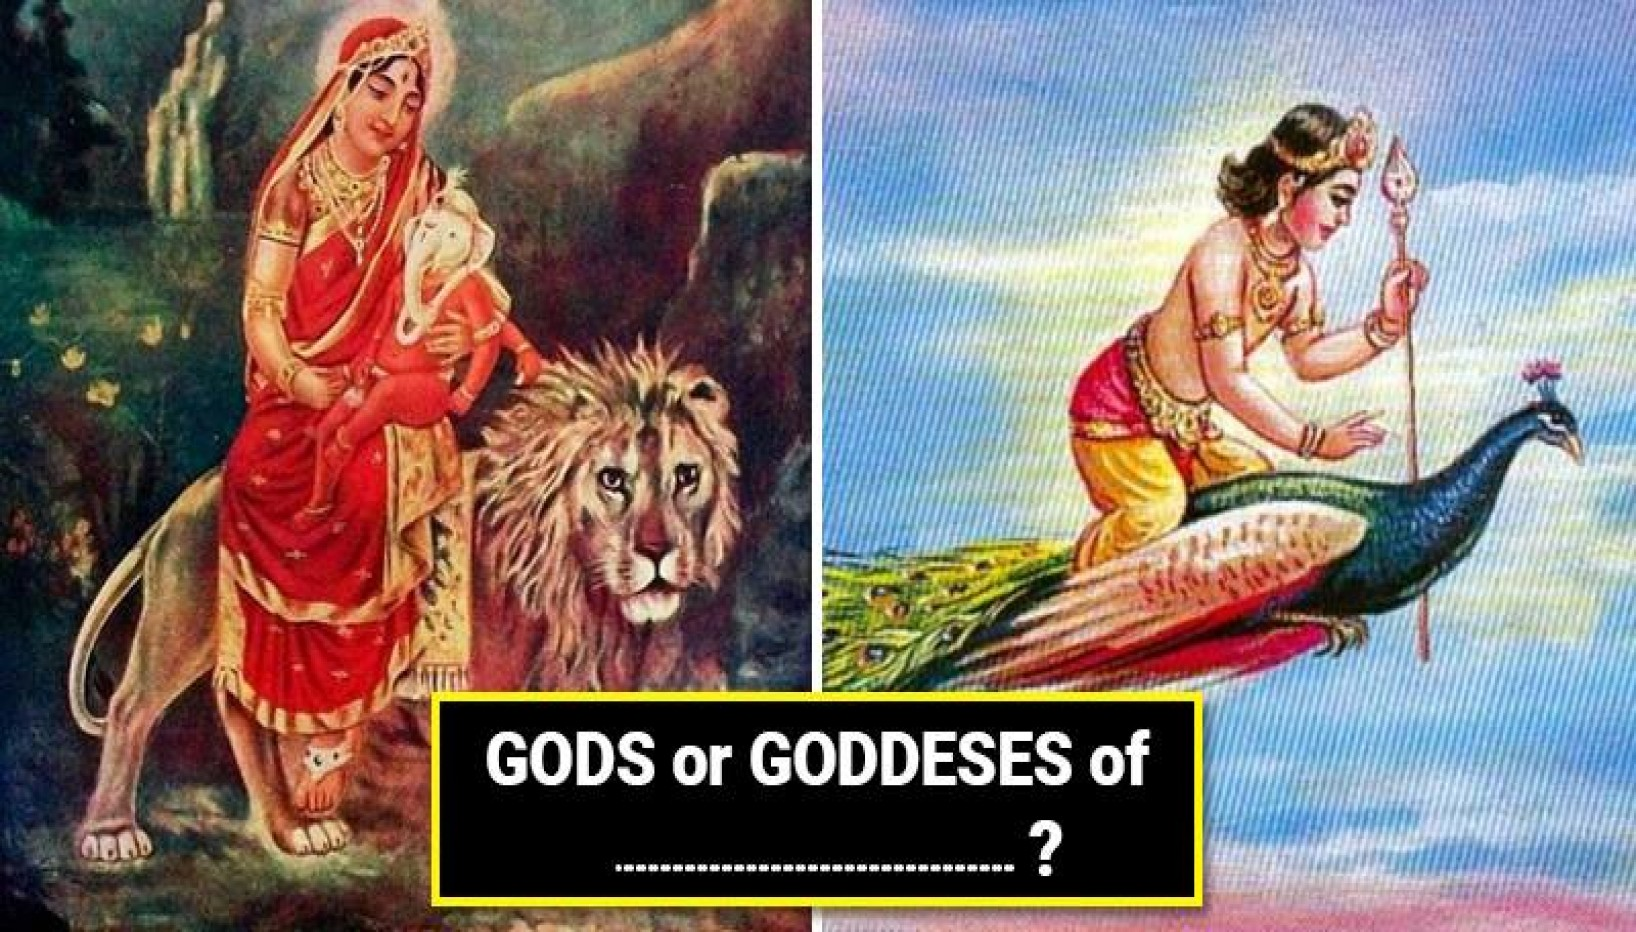 Can You Guess What These Hindu Deities Are Gods And Goddesses Of?